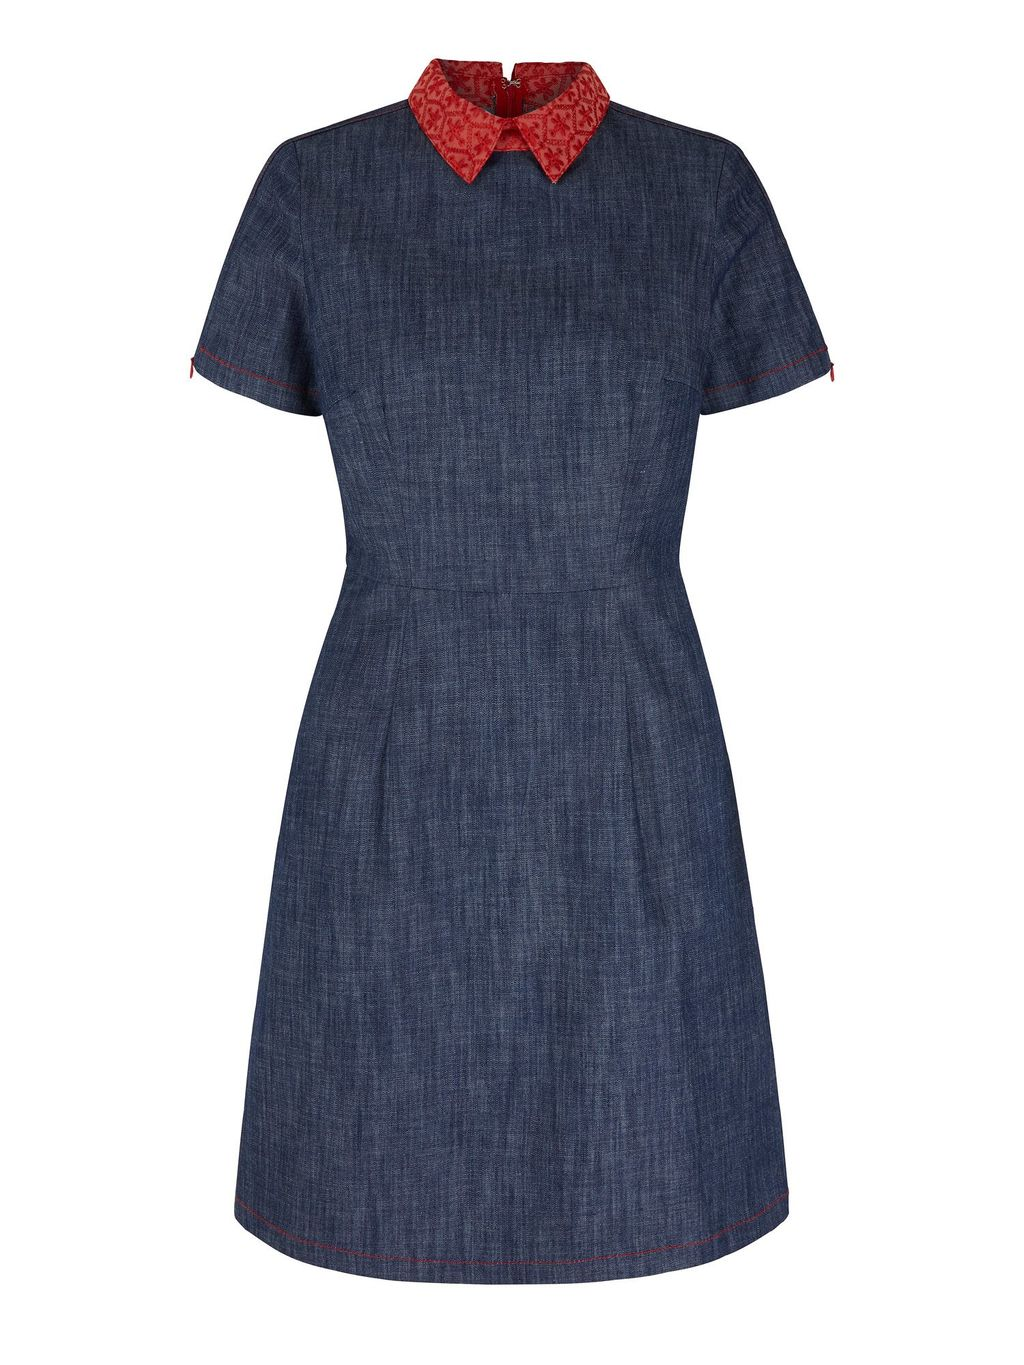 By Lilah Embroidered Collar Denim Dress, Blue - length: mid thigh; predominant colour: denim; occasions: casual, creative work; fit: fitted at waist & bust; style: fit & flare; fibres: cotton - stretch; neckline: no opening/shirt collar/peter pan; sleeve length: short sleeve; sleeve style: standard; pattern type: fabric; pattern: patterned/print; texture group: woven light midweight; season: s/s 2016; wardrobe: highlight